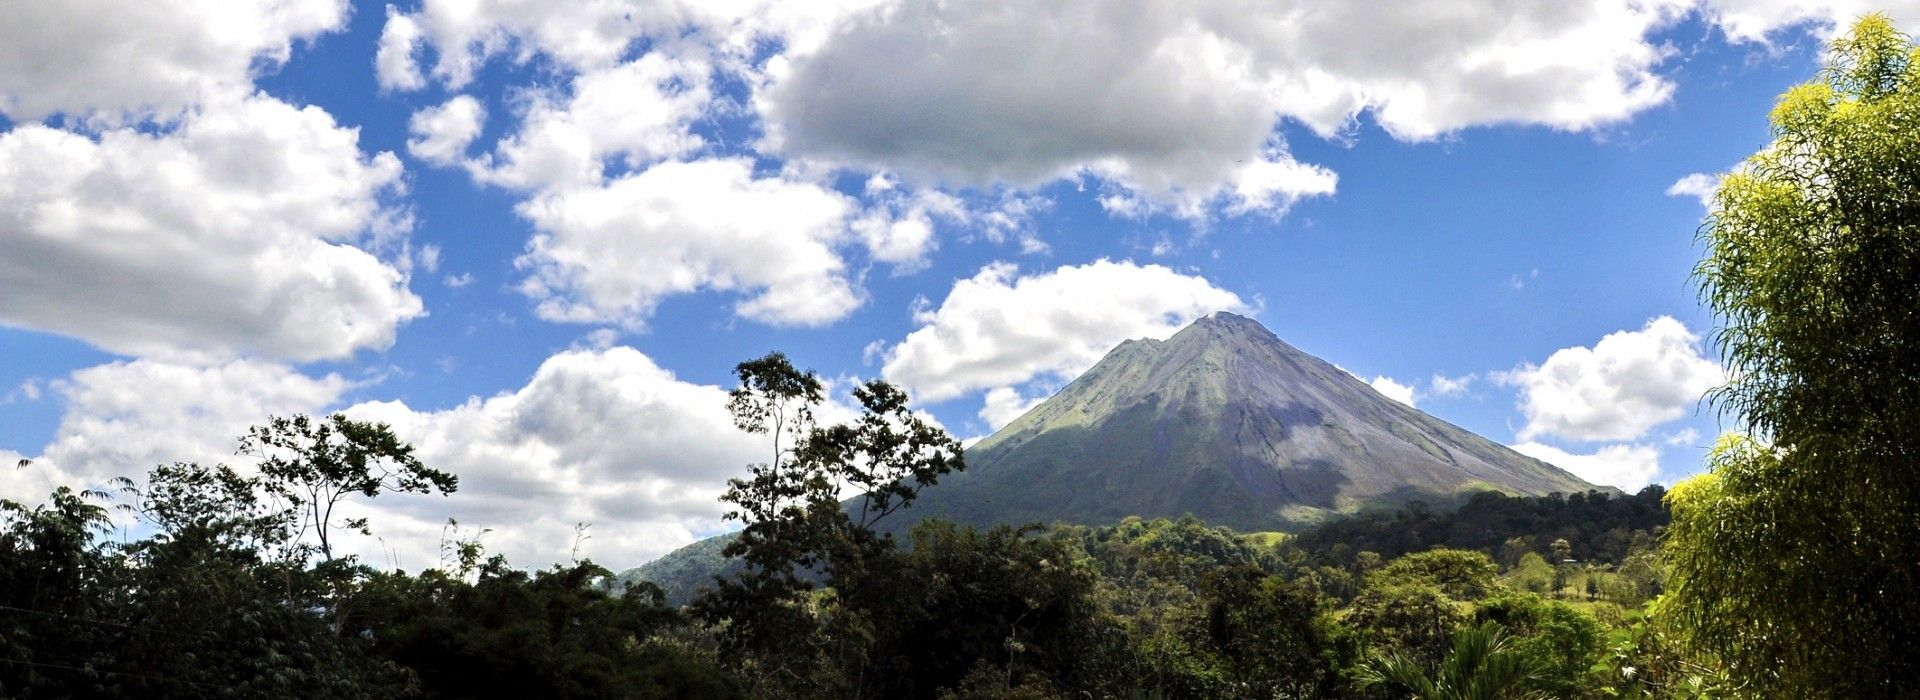 La Fortuna is home to Costa Rica's most popular volcano, Arenal Volcano.